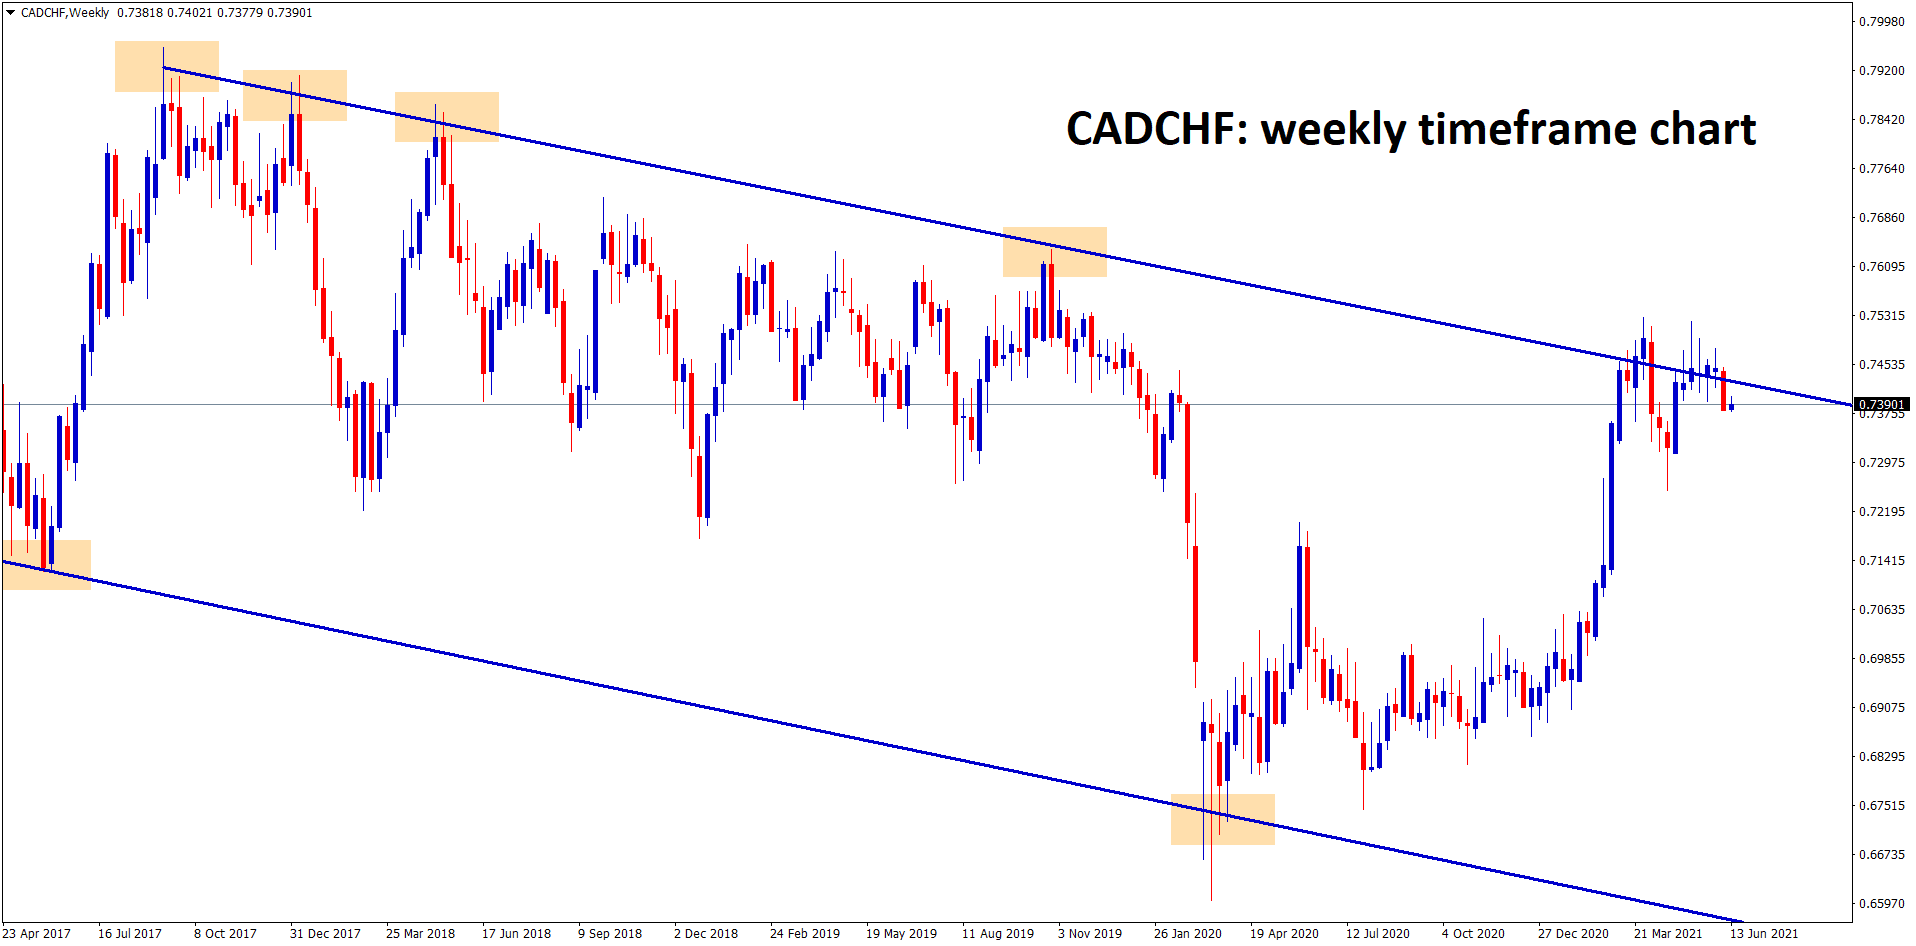 CADCHF in the higher timeframe weekly its the lower high zone of the downtrend line